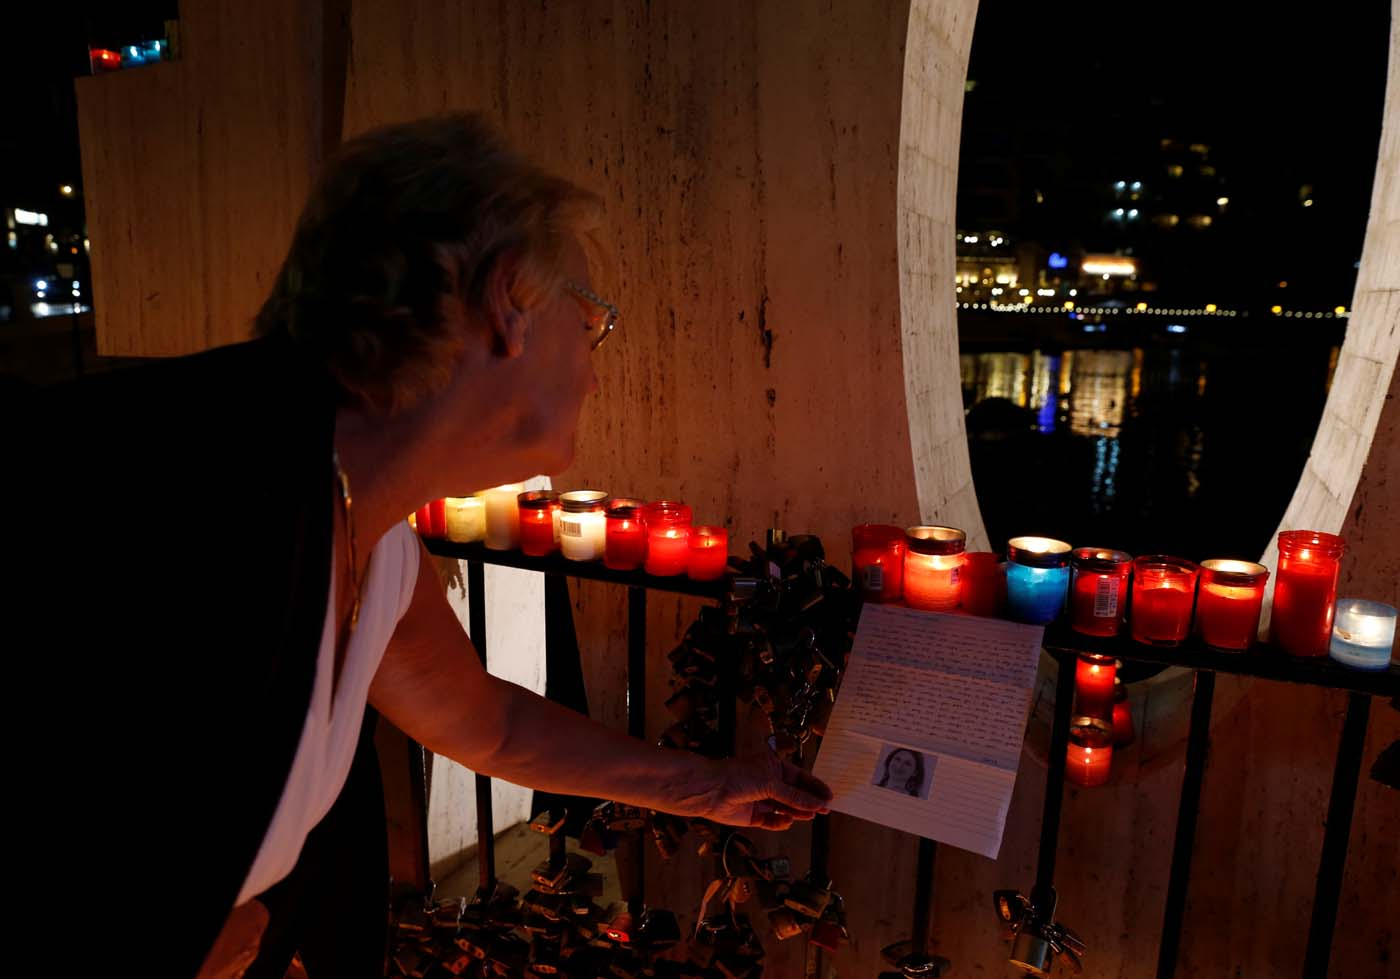 A woman reads a letter to investigative journalist Daphne Caruana Galizia, assassinated in a car bomb attack, on the Love monument during a silent candlelight vigil to protest against her murder, in St Julian's, Malta, October 16, 2017. REUTERS/Darrin Zammit Lupi